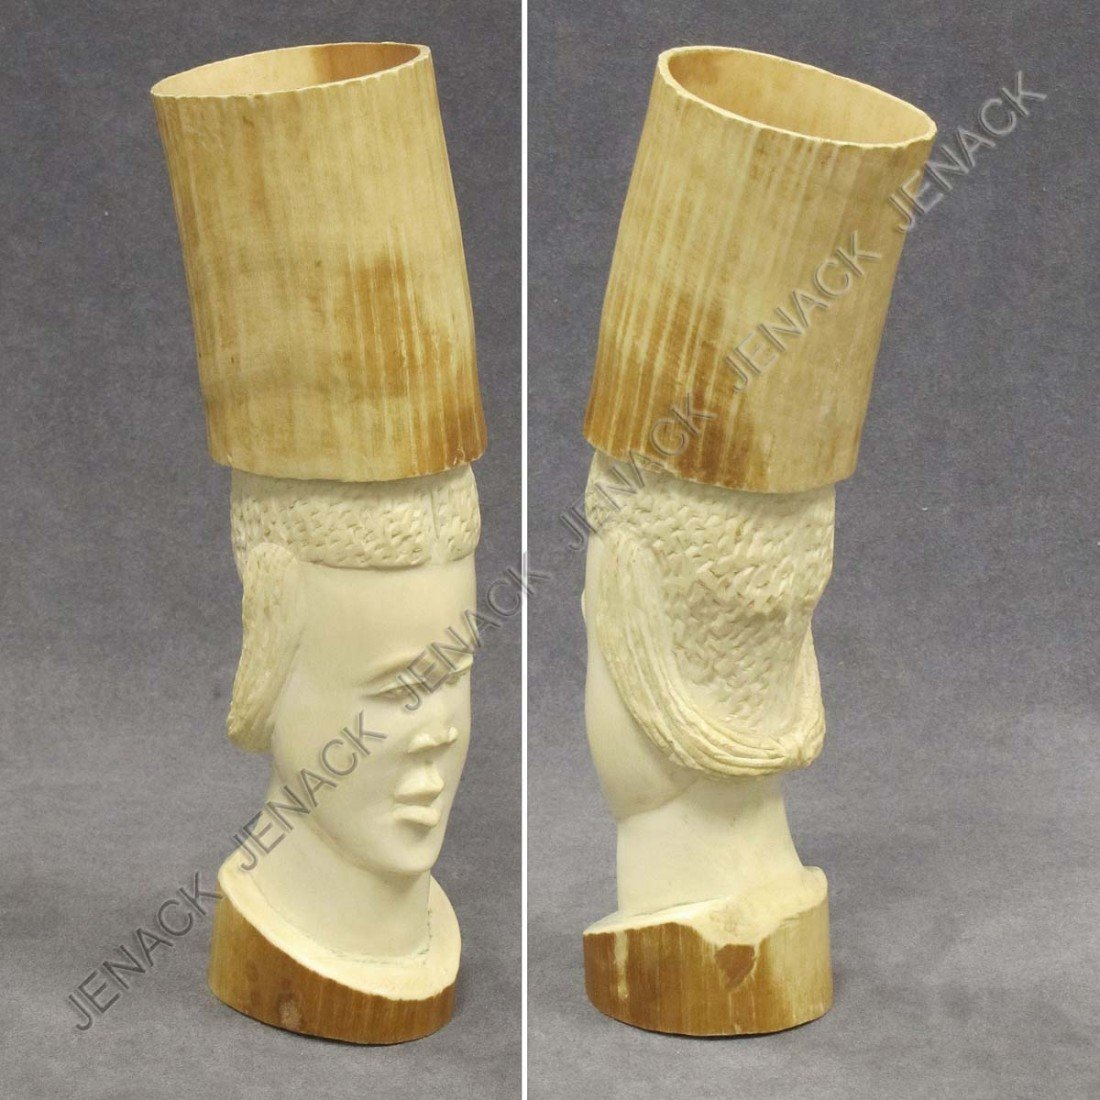 5: VINTAGE AFRICAN CARVED IVORY BUST OF A WOMAN